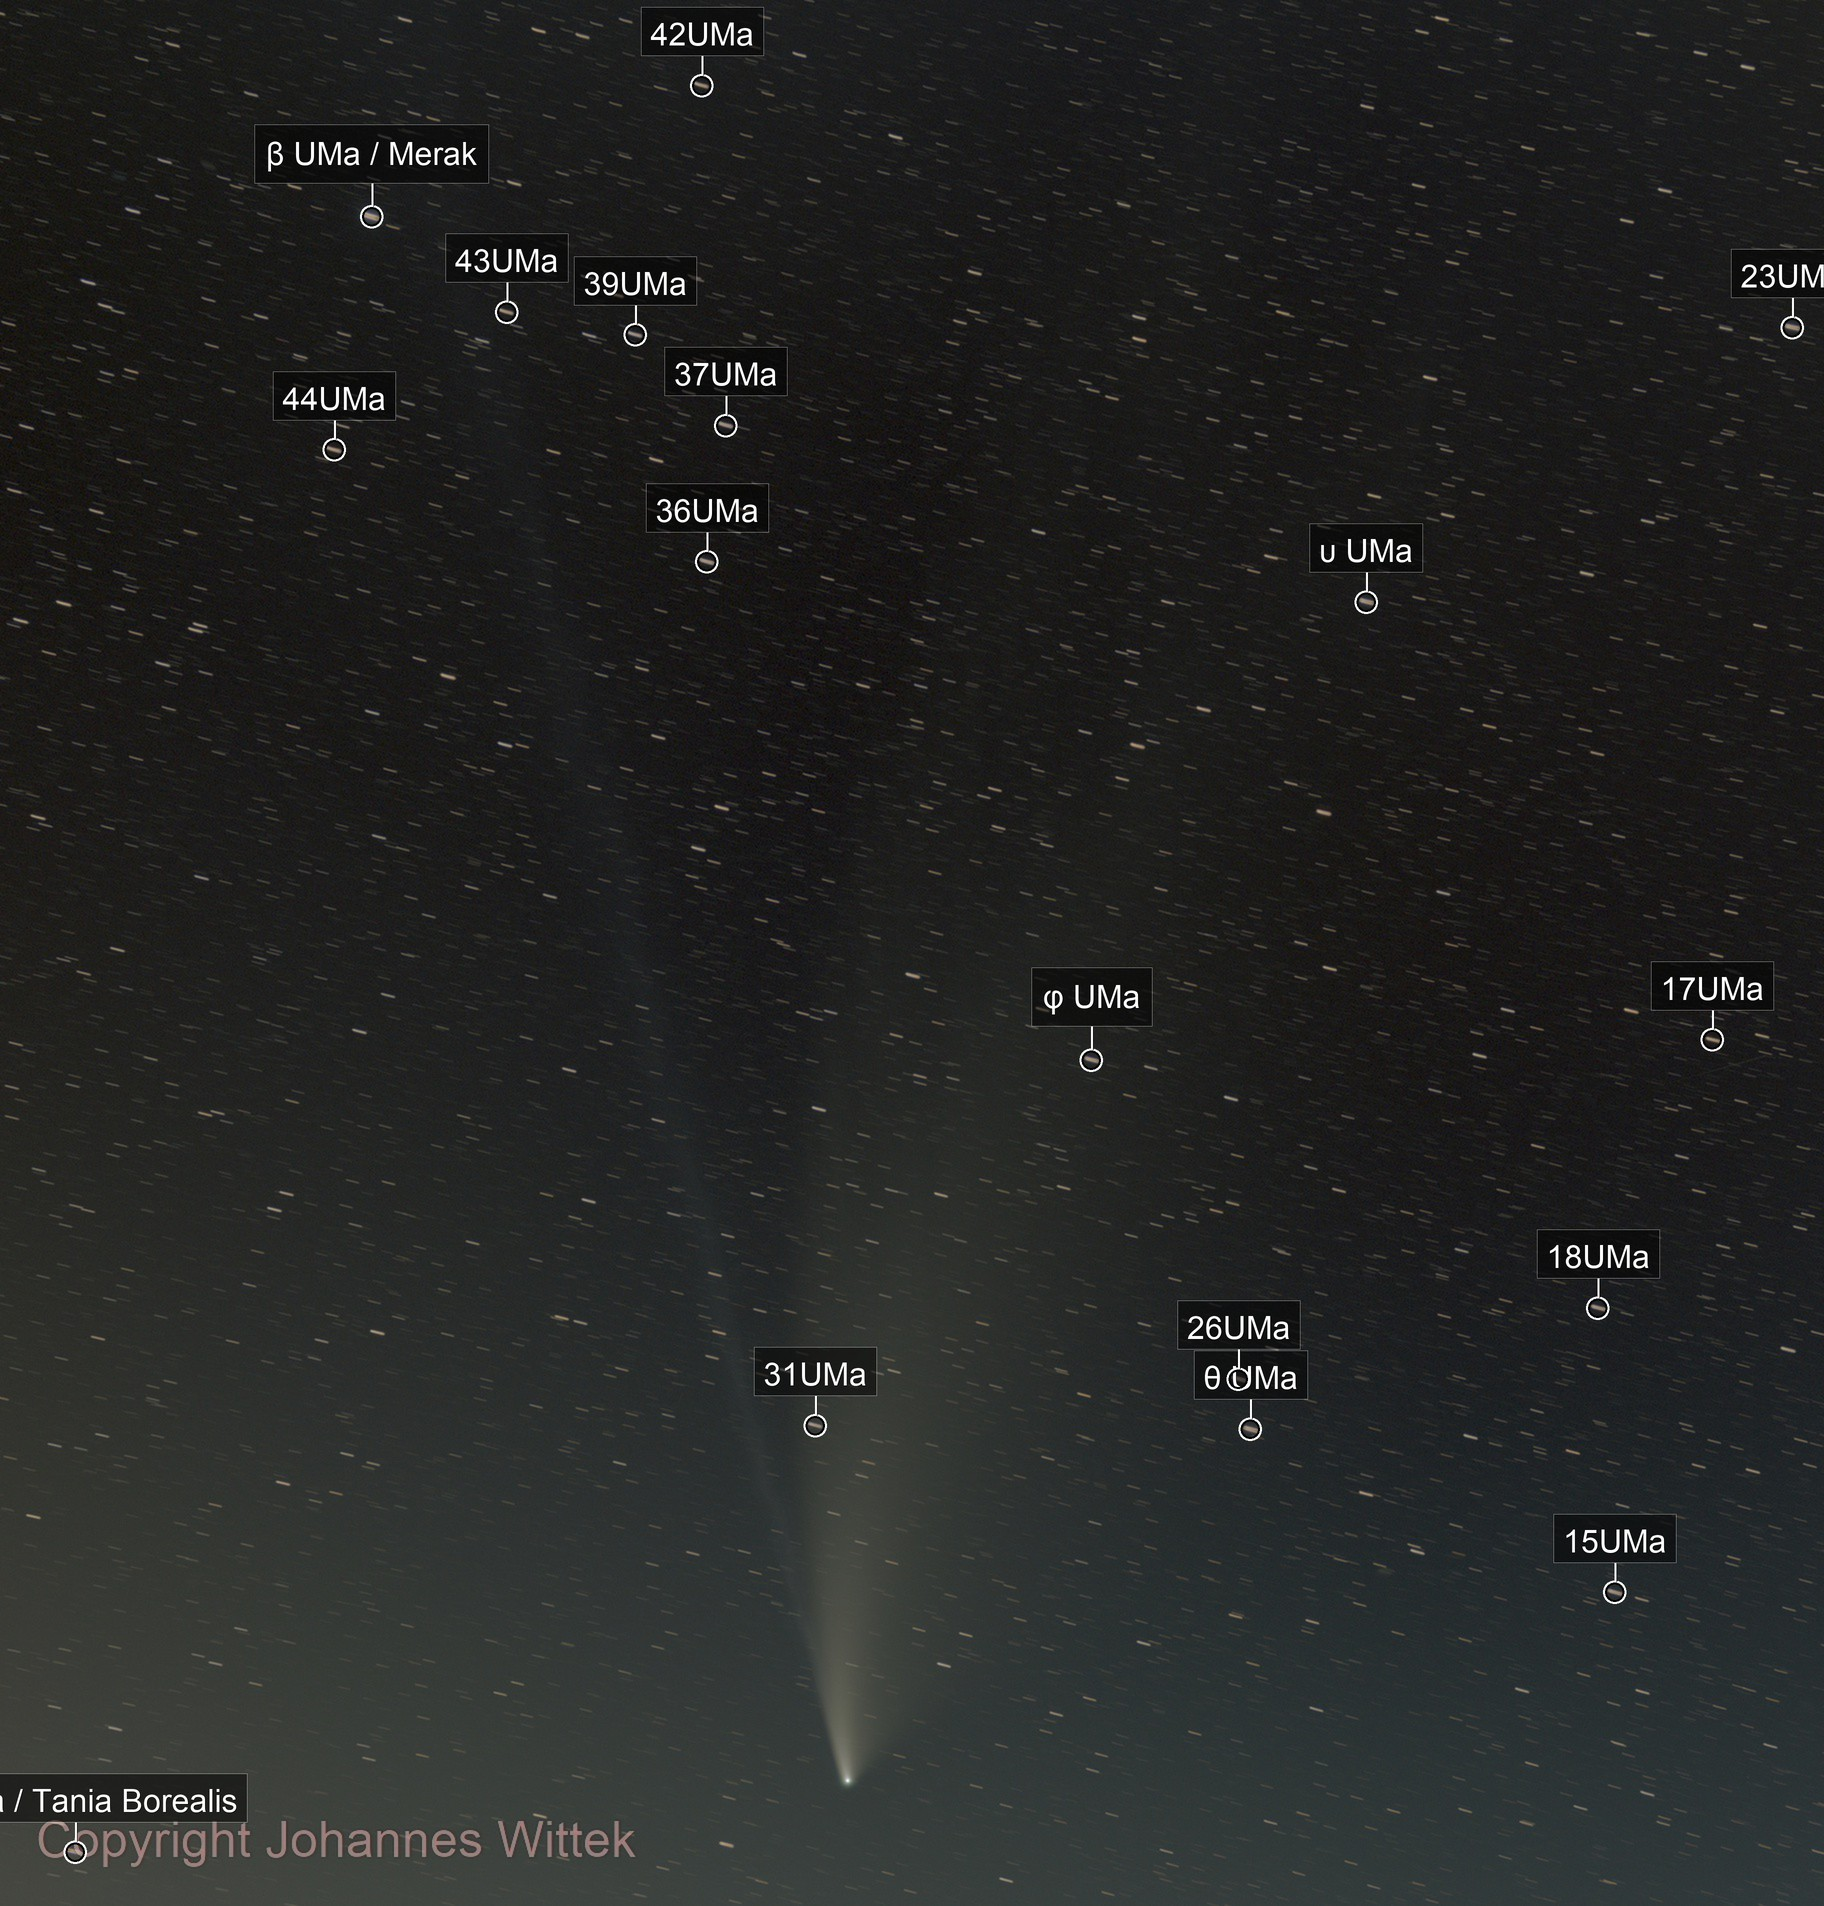 Neowise 2020-07-20/21 2nd. Edition